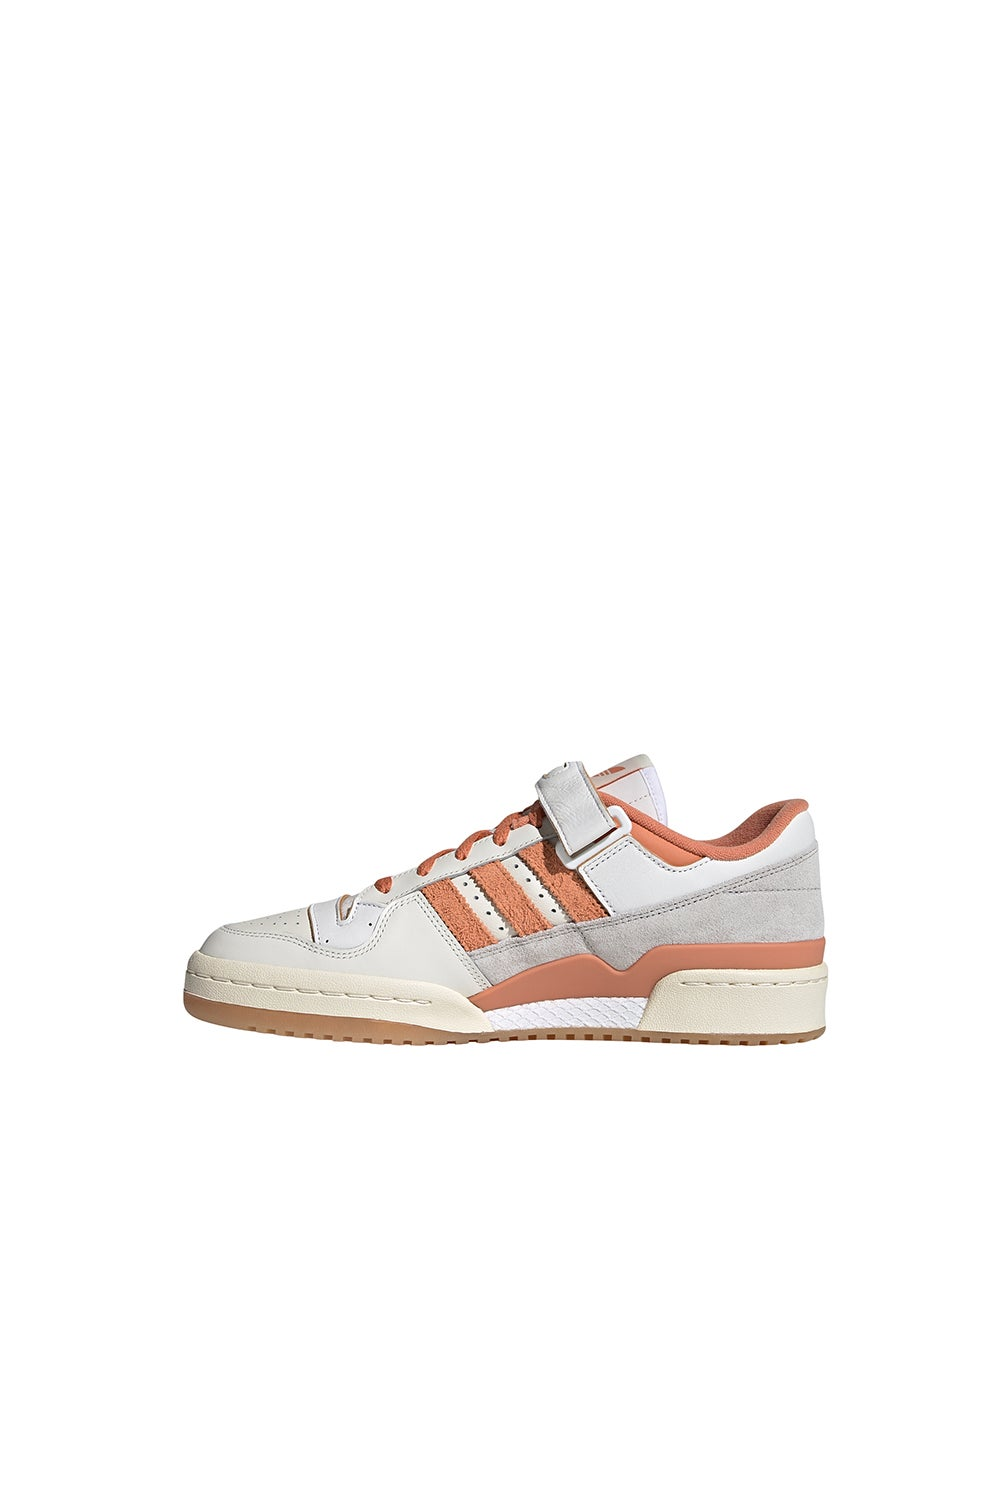 adidas Forum Low Premium Hazy Copper